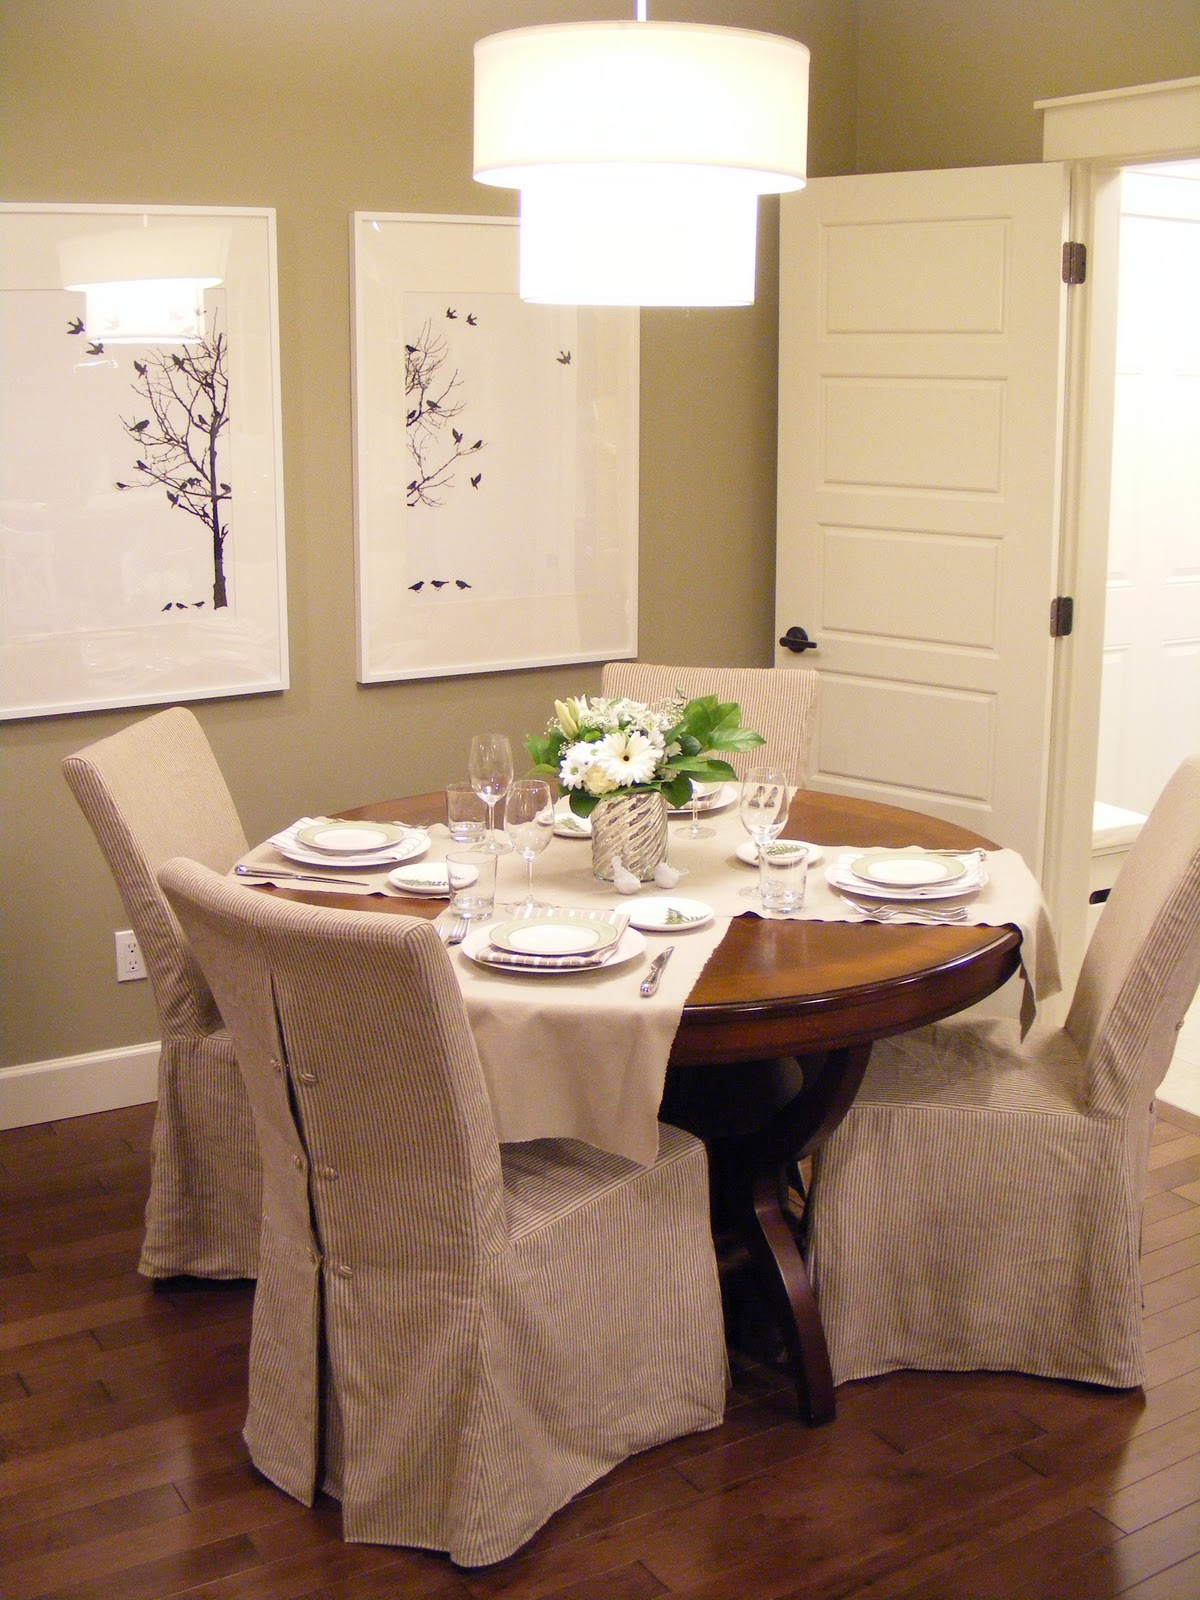 How To Make Slip Covers For Dining Room Chairs